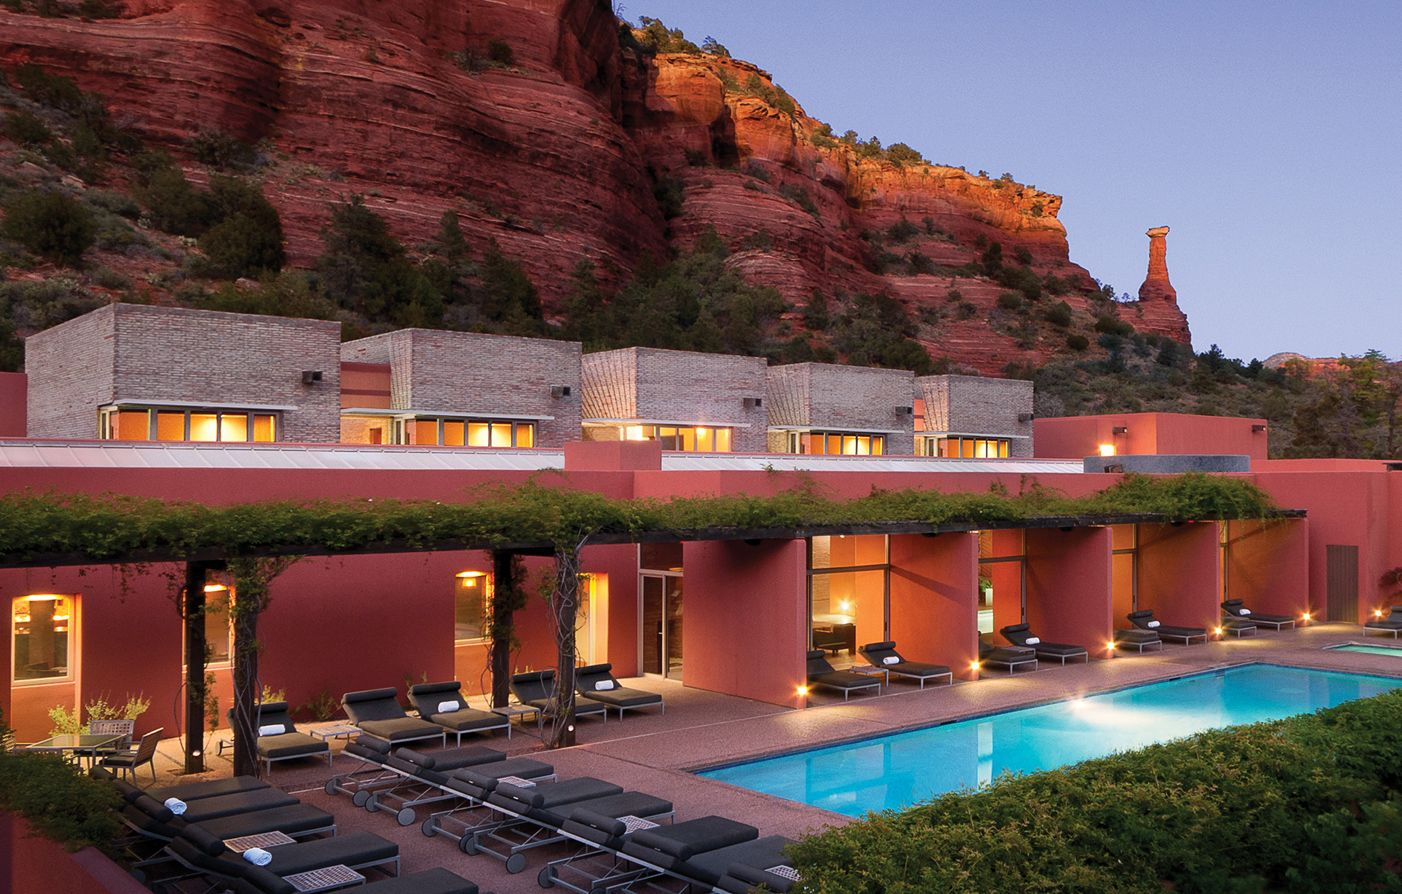 Southwest Spa Getaways To Visit This Summer With images